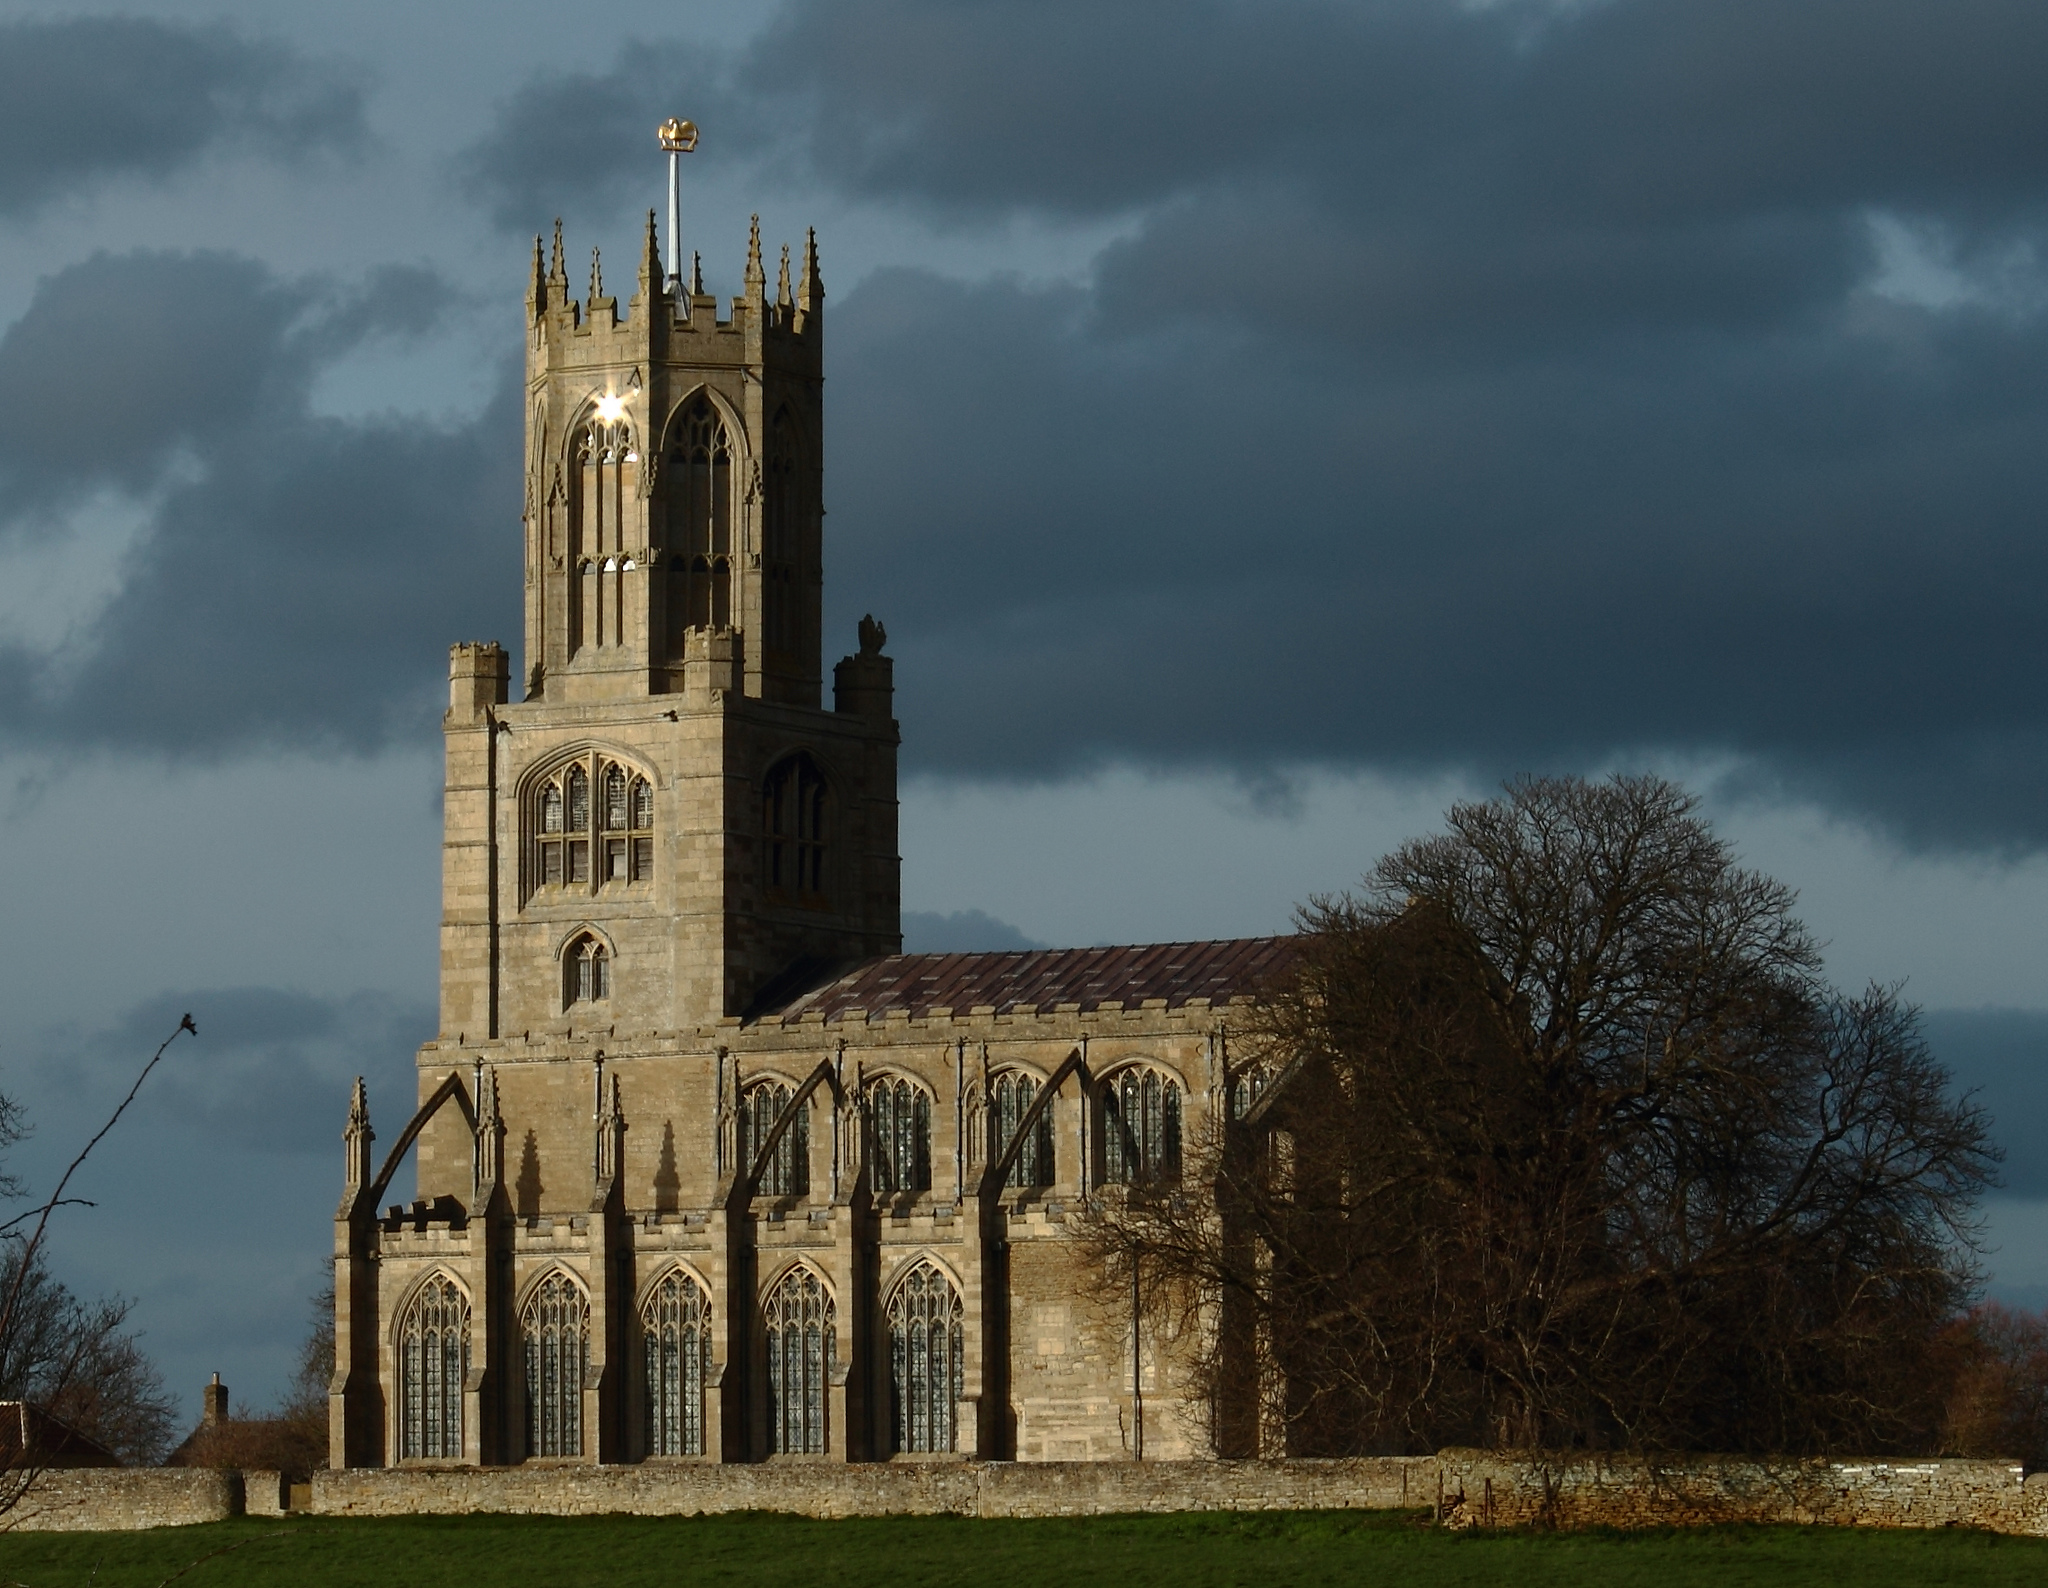 St Mary and All Saints, Fotheringhay MUST CREDIT (c) Derek John Lee